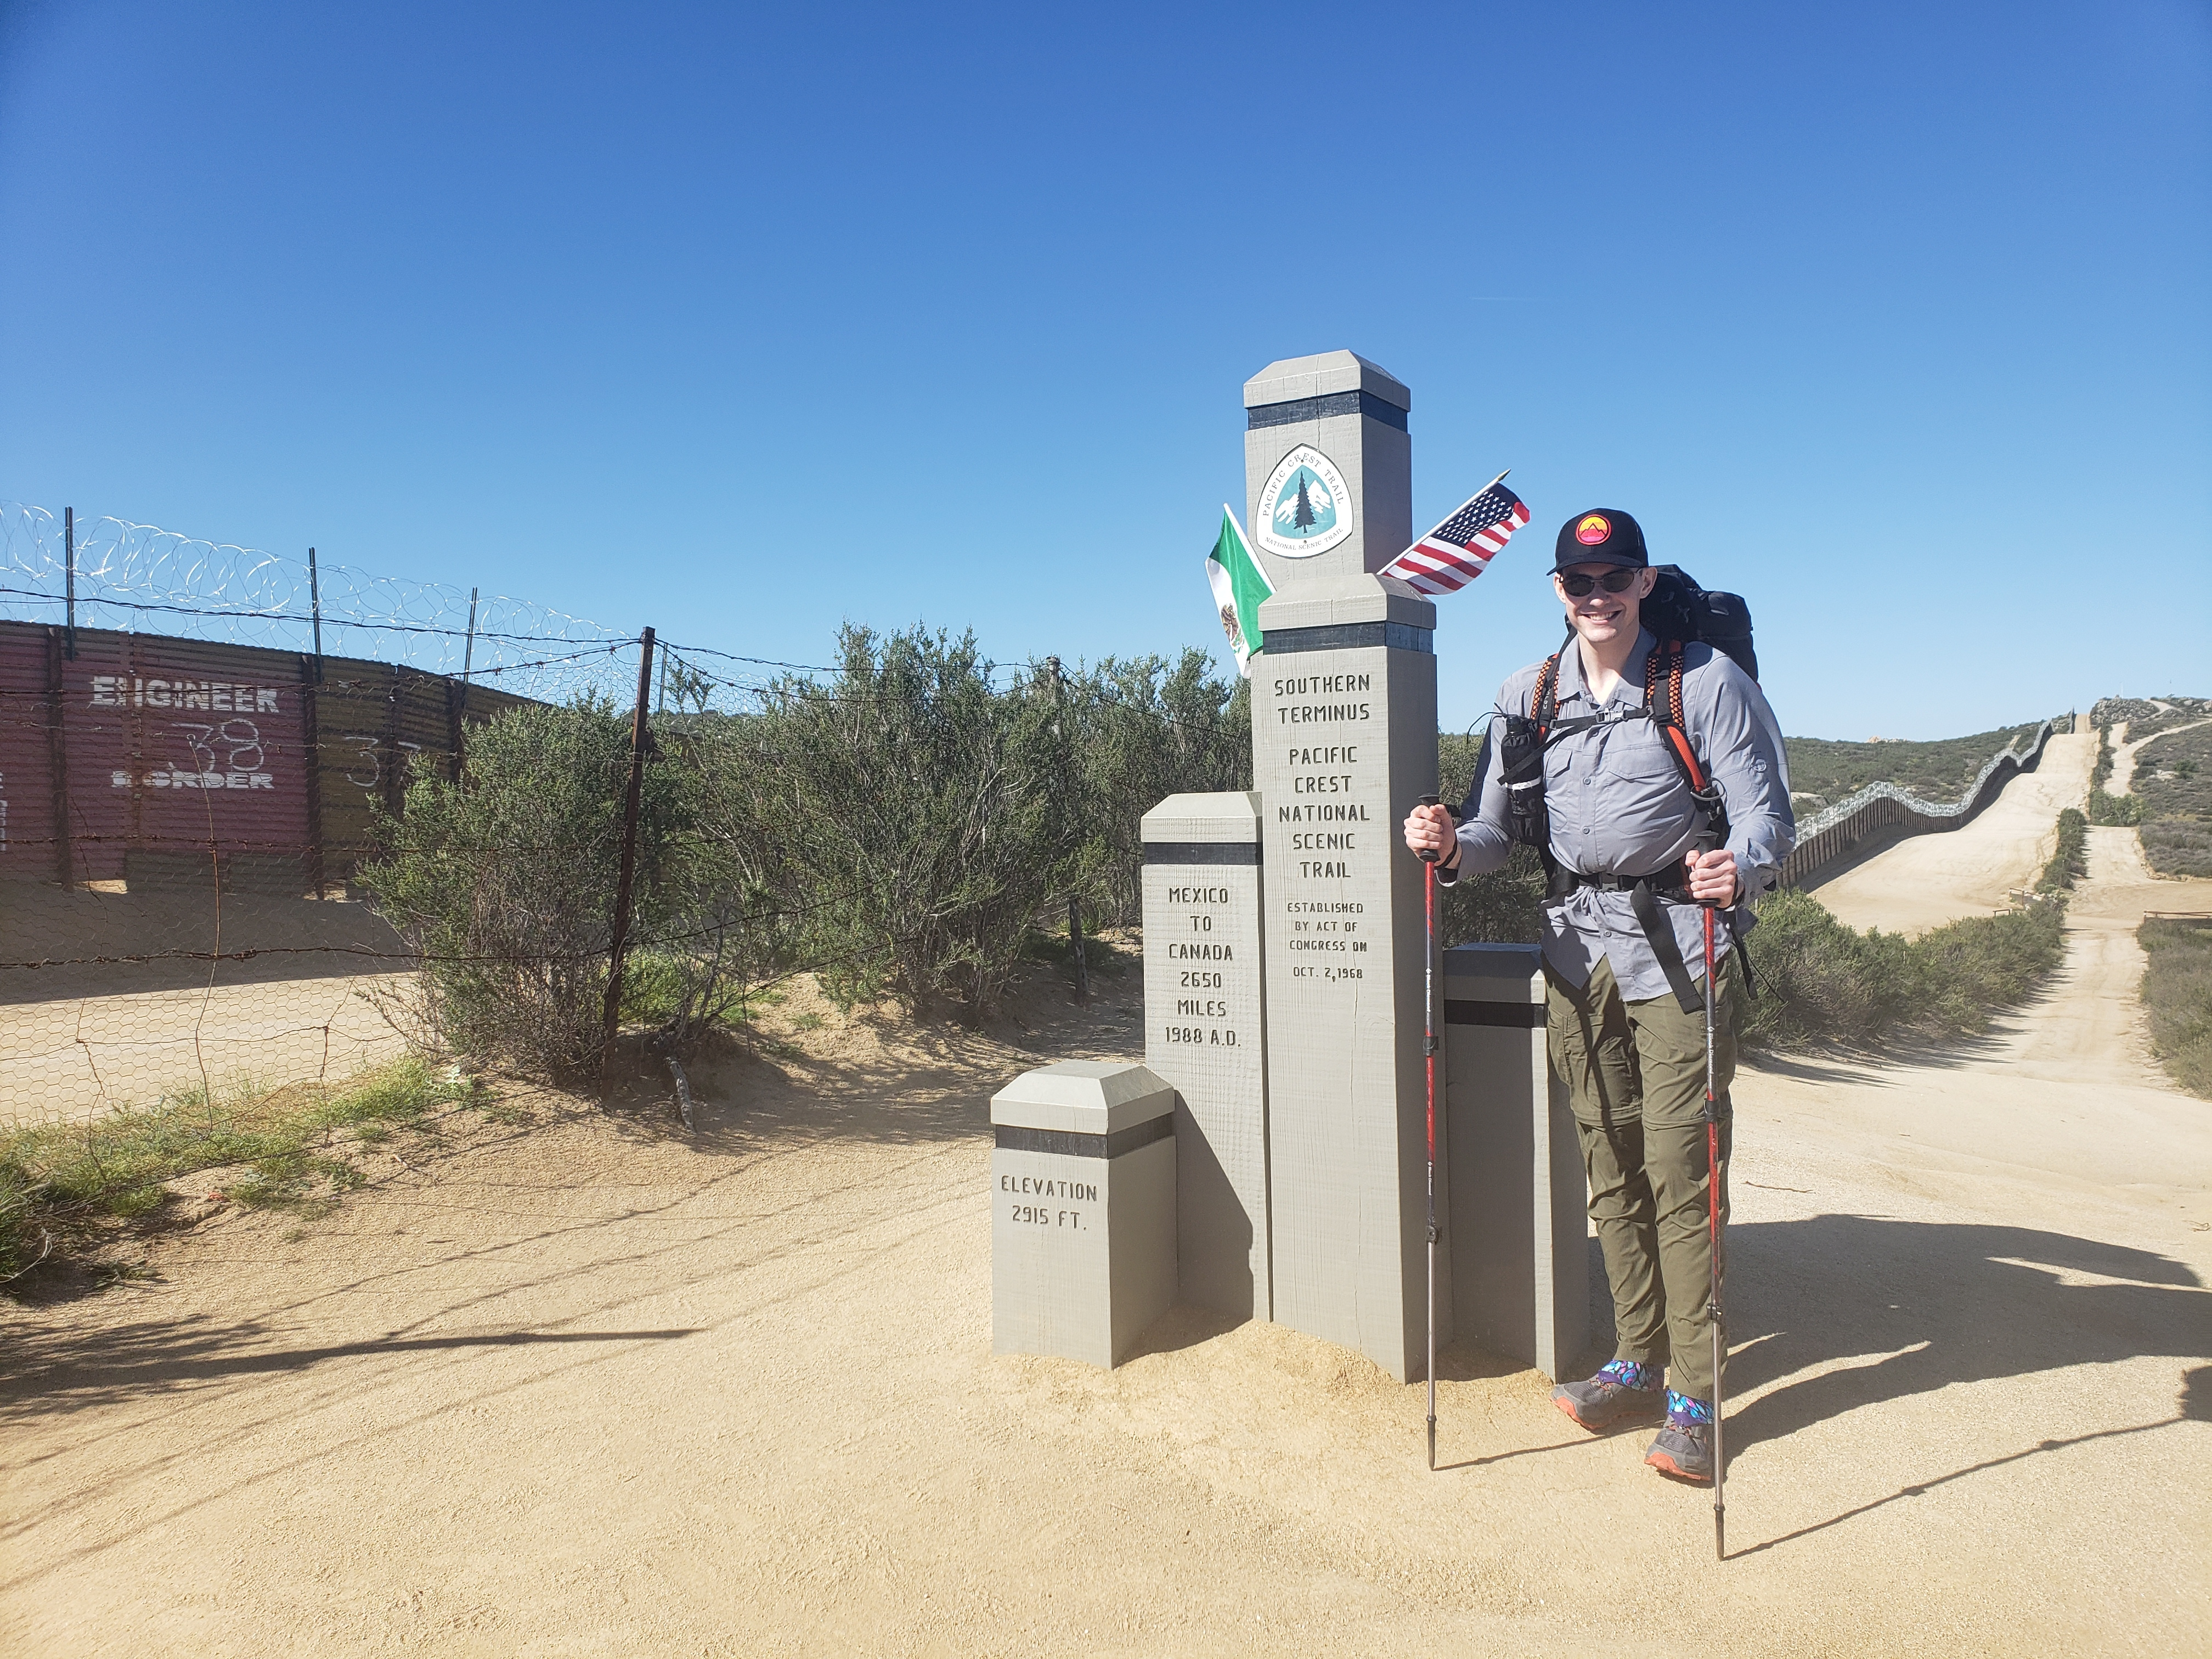 A Whole New Life: Day One on the Pacific Crest Trail - The Trek